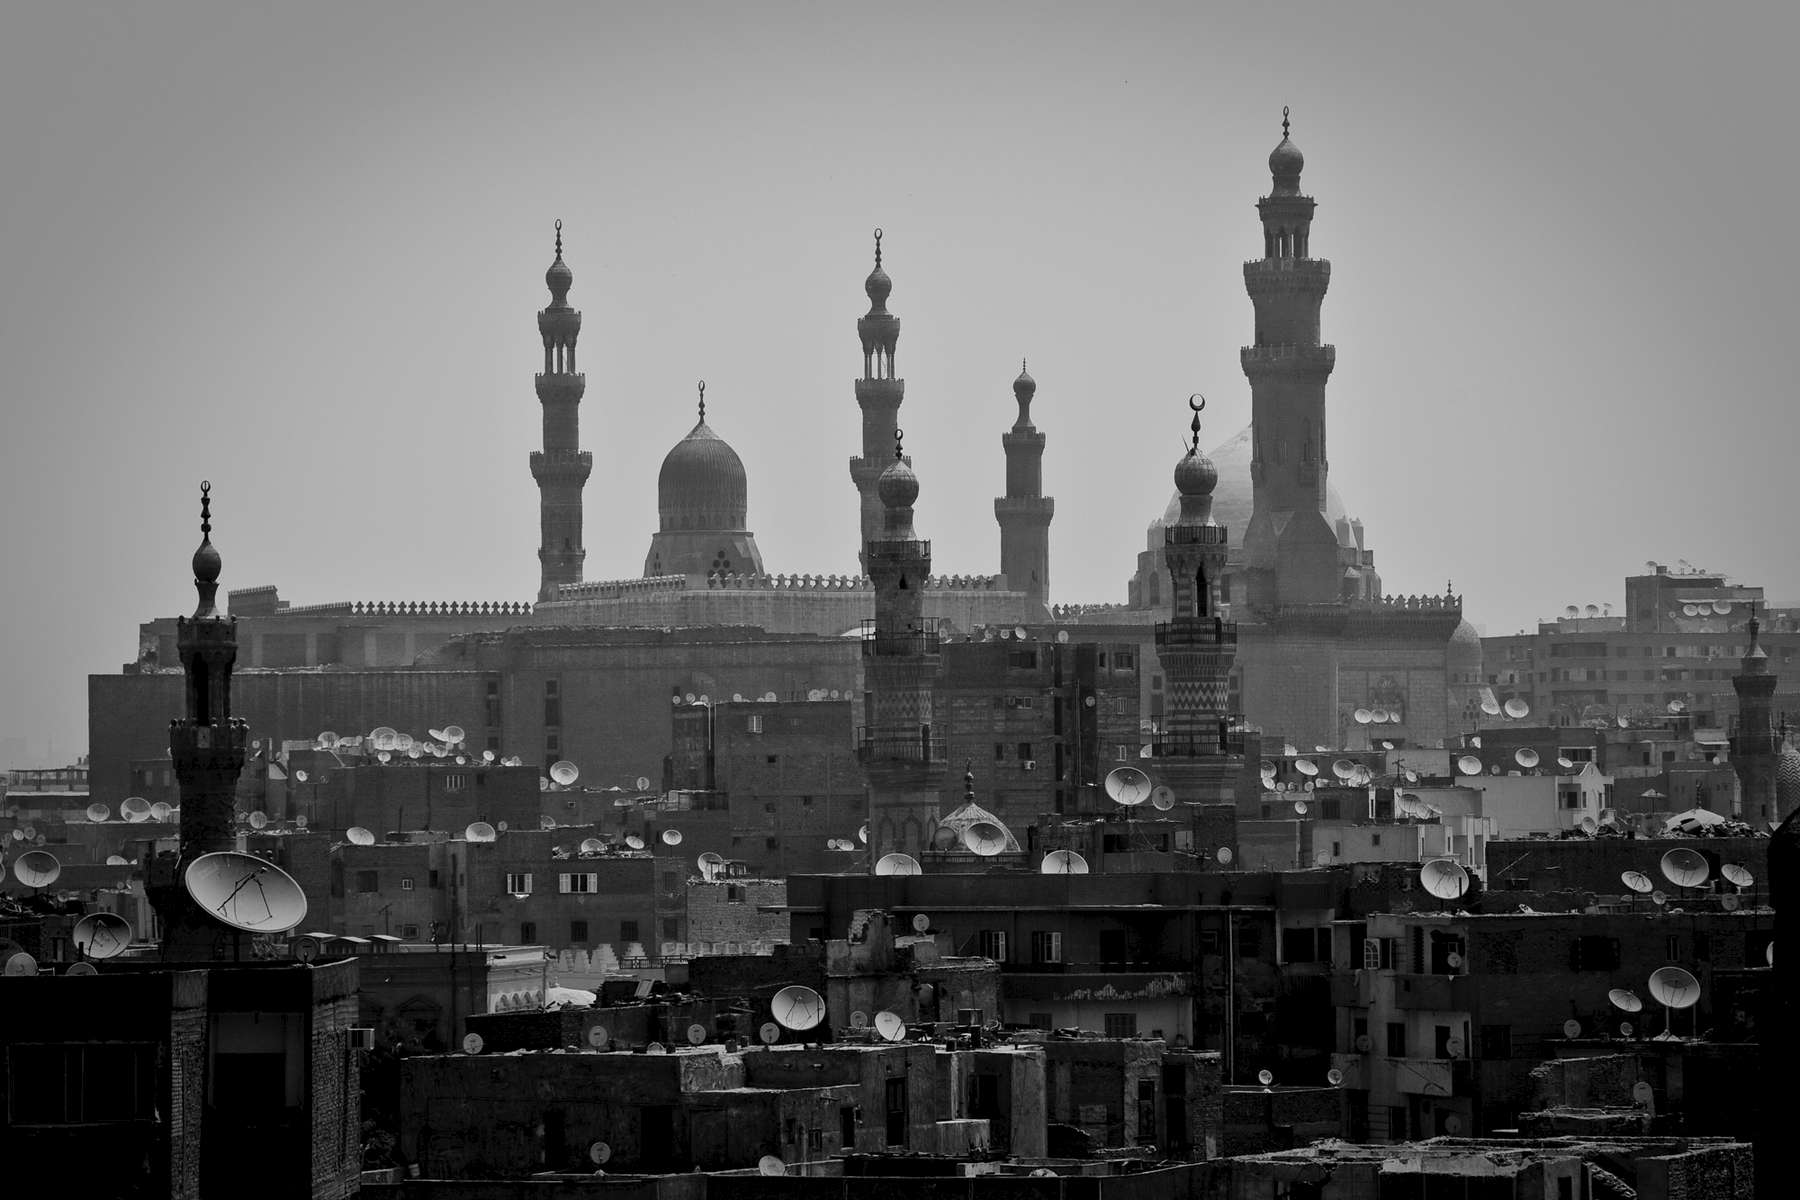 Dishes and domes. In the middle of a modern city of more than 20 million lies much of the original medieval city of Cairo. This area holds the largest concentration of classical Islamic architecture in the world and is a UNESCO World Heritage Site.